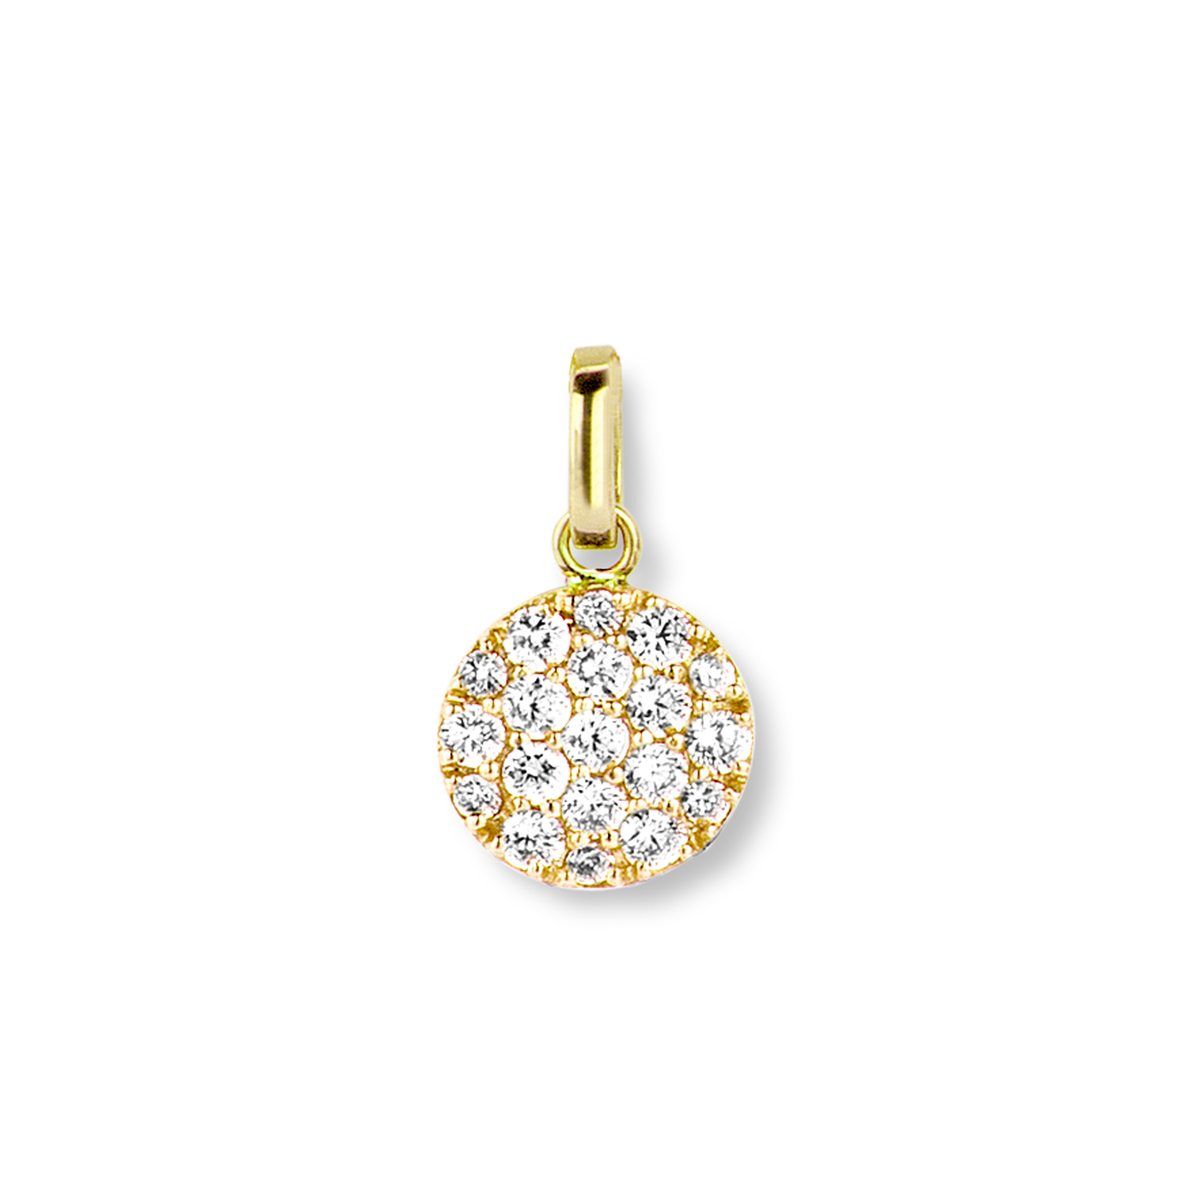 eolo pendant in yellow gold